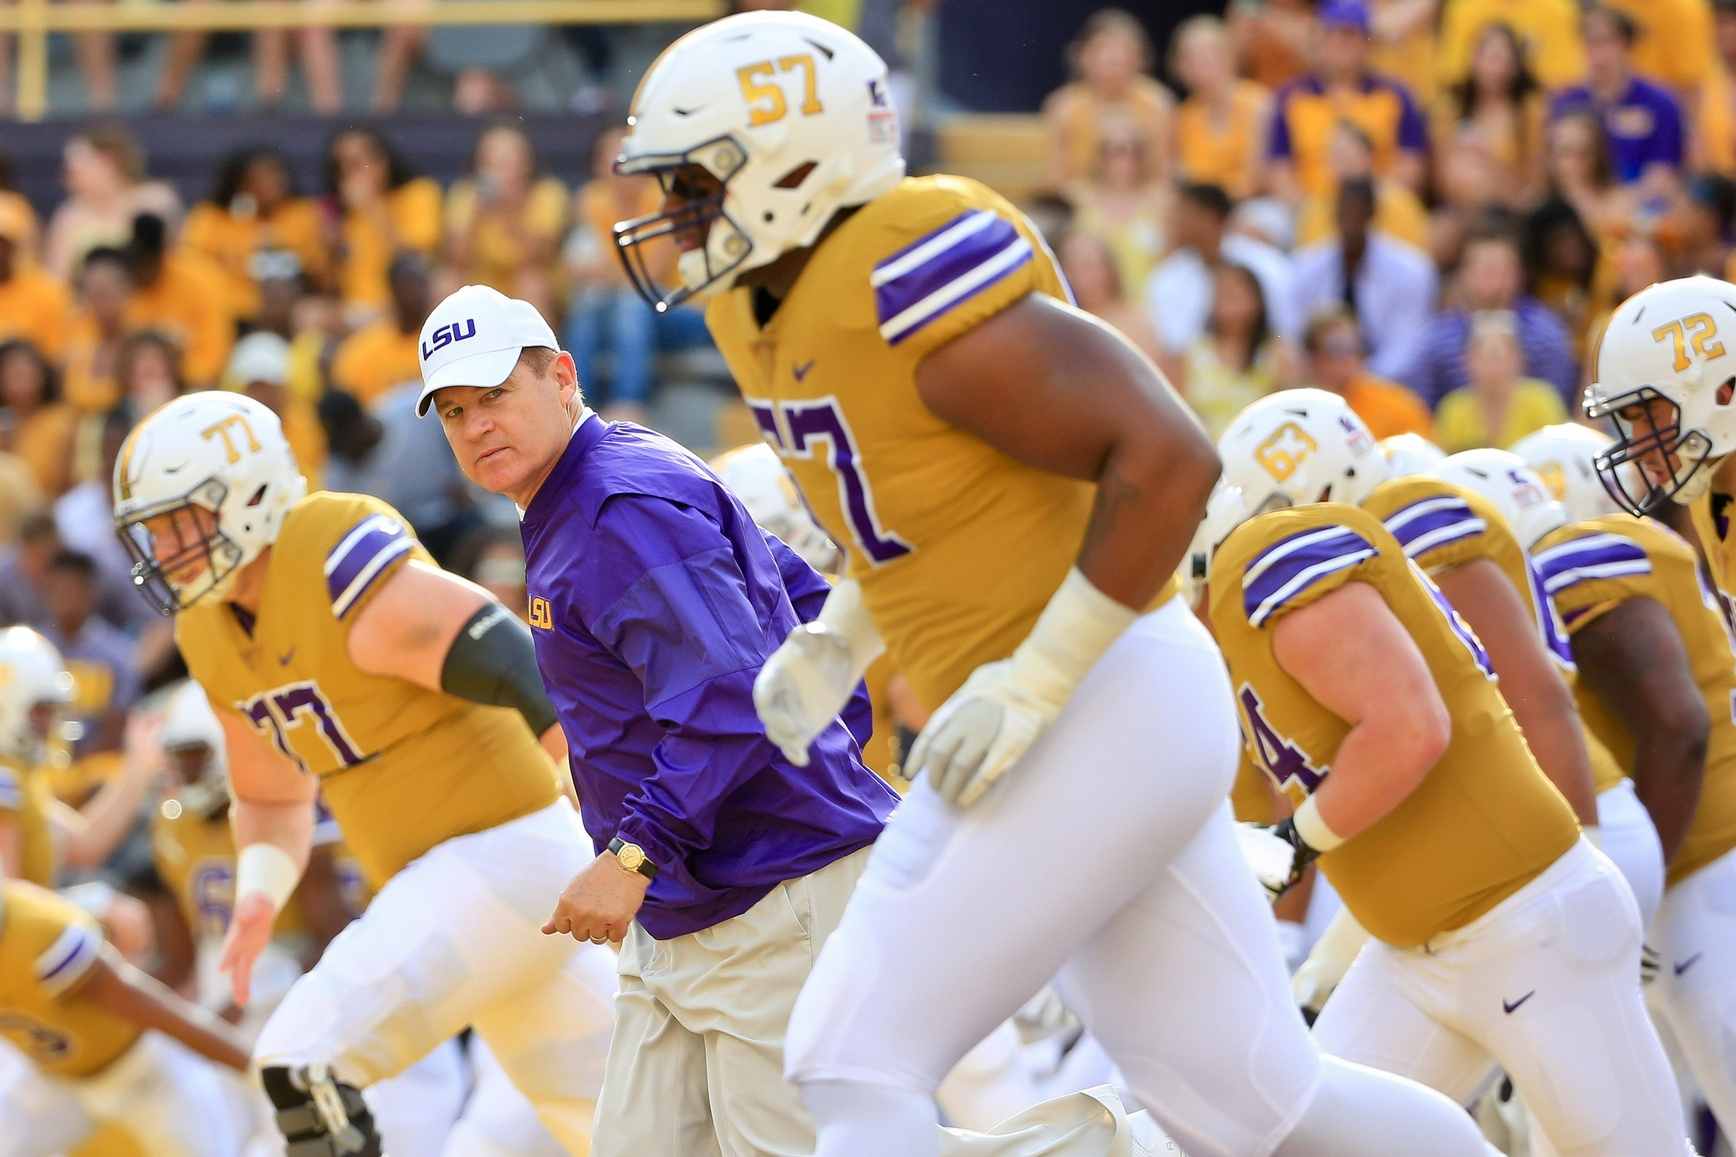 Sep 17, 2016; Baton Rouge, LA, USA; LSU Tigers head coach Les Miles runs onto the field with his team before a game against the Mississippi State Bulldogs at Tiger Stadium. Mandatory Credit: Derick E. Hingle-USA TODAY Sports